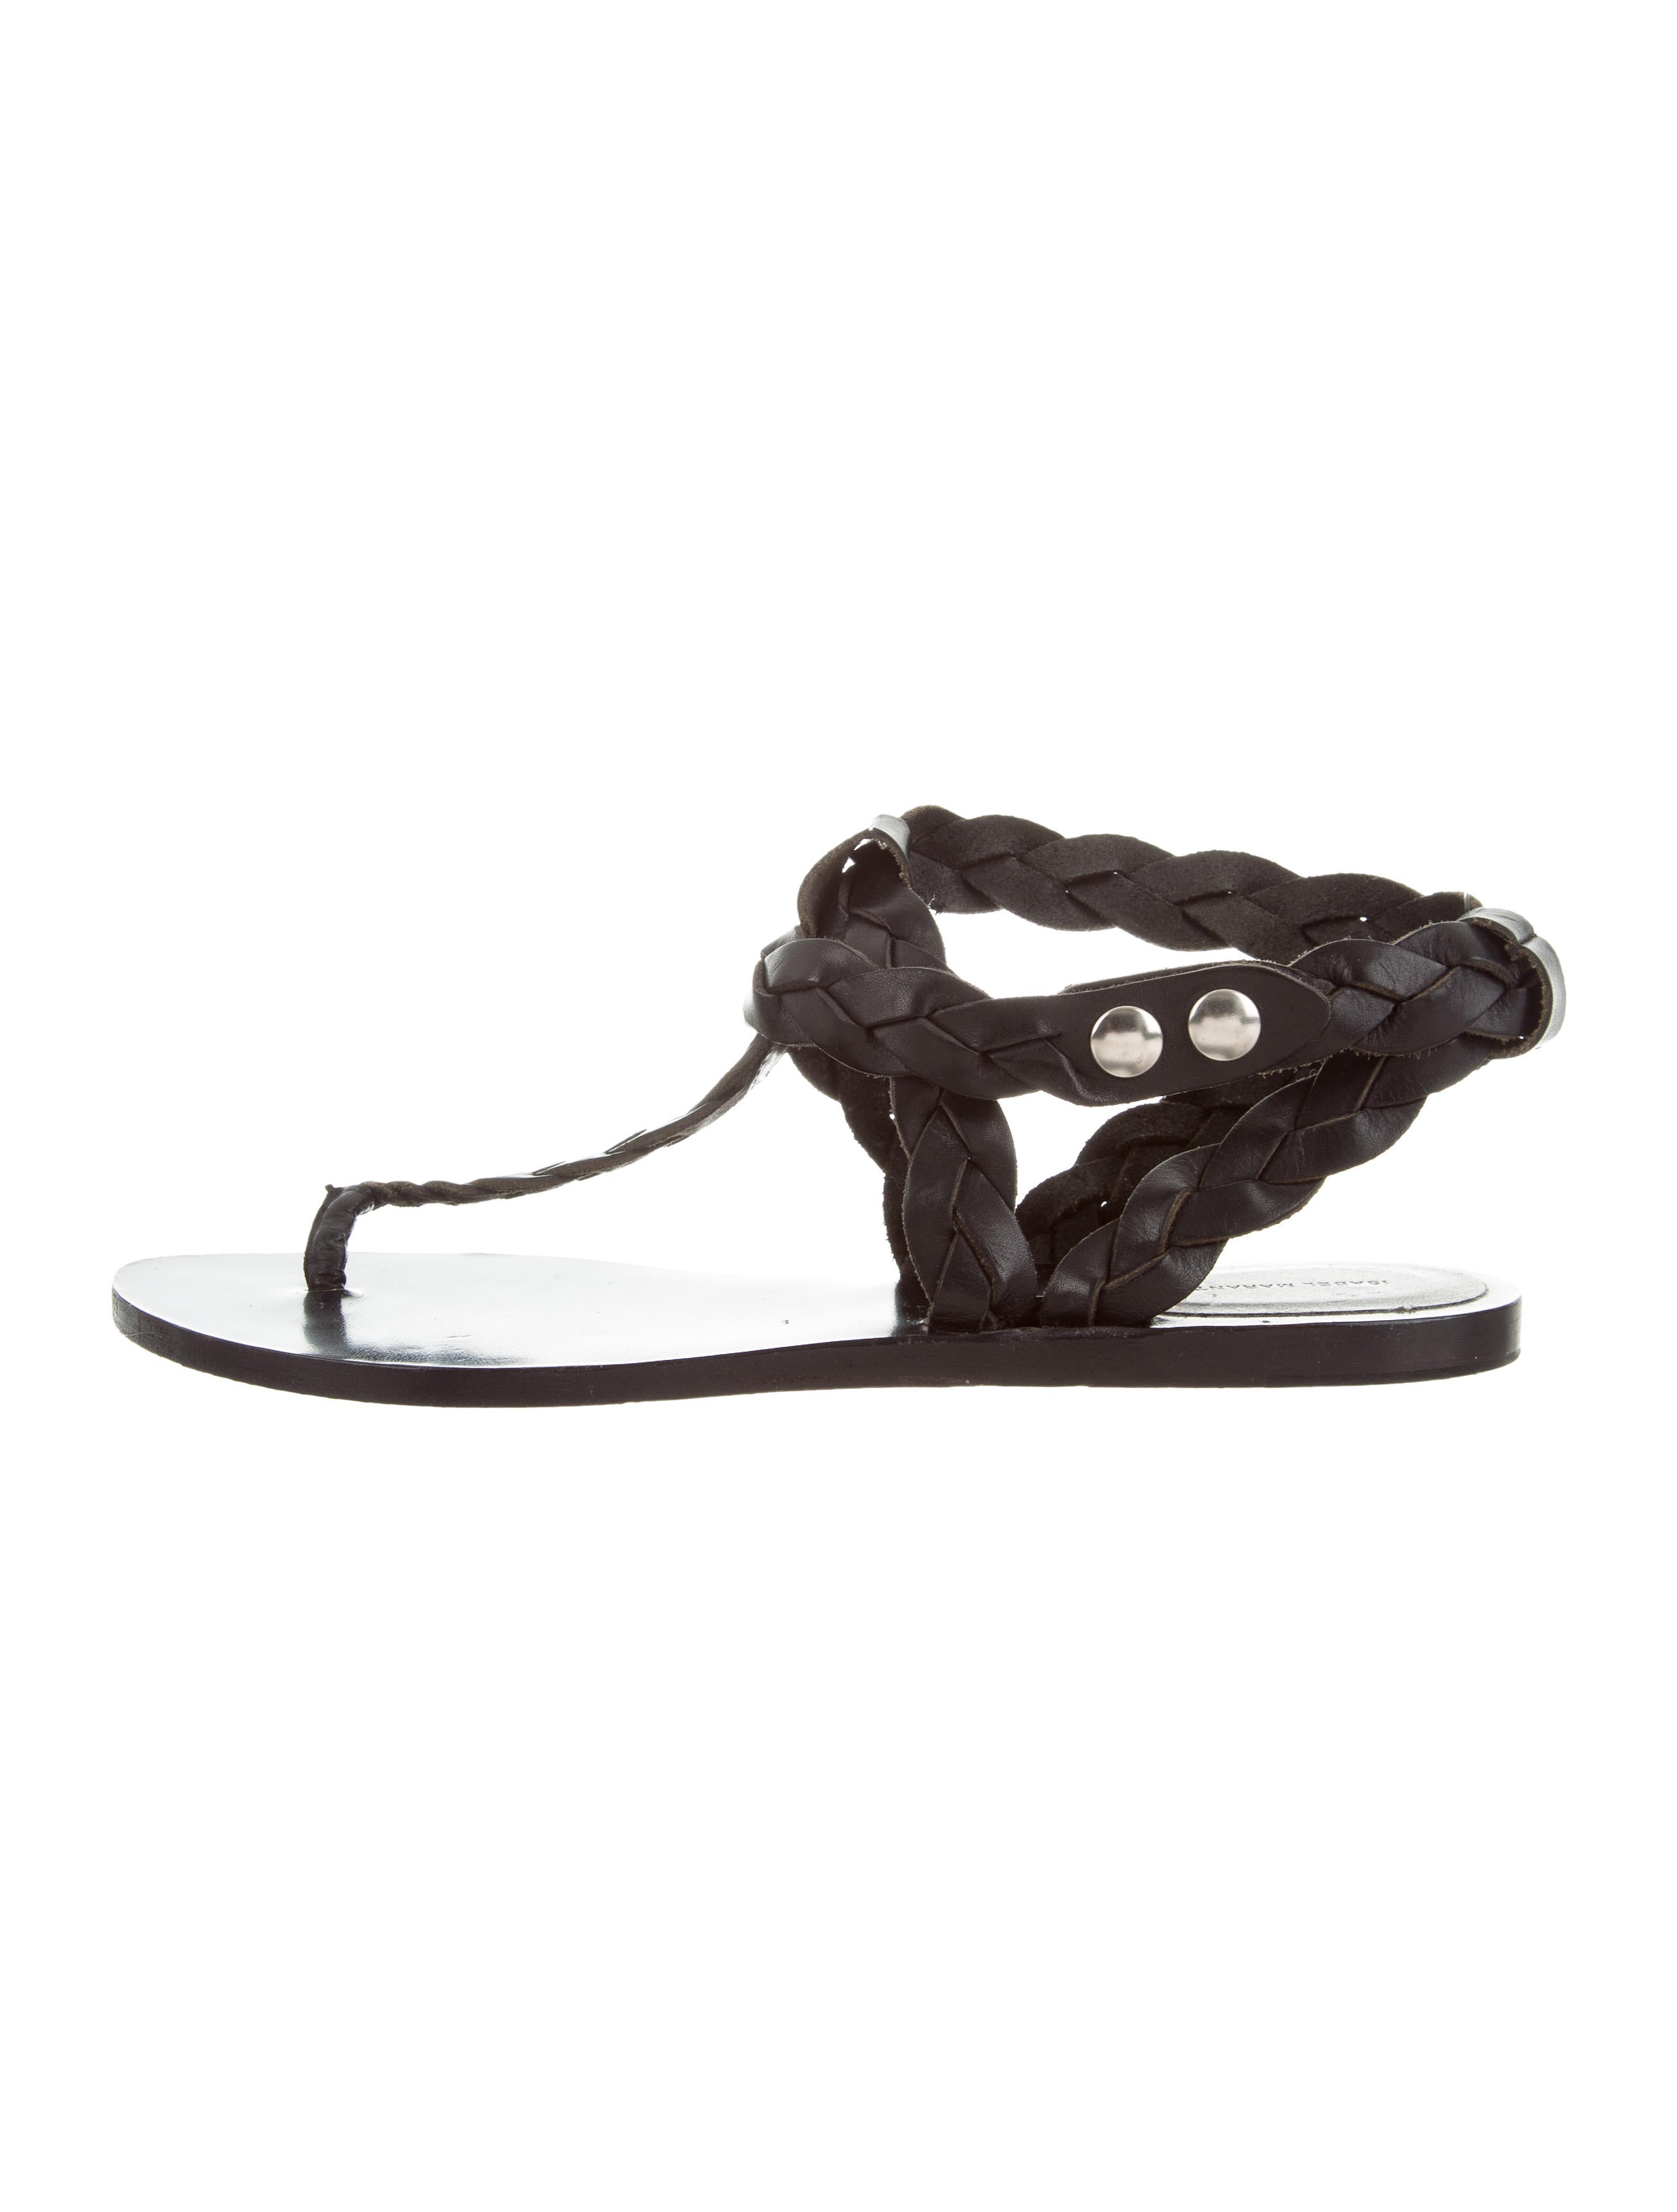 Isabel Marant Braided Leather T-Strap Sandals sale online store cheap in China with credit card sale online buy cheap nicekicks dVT69VSW